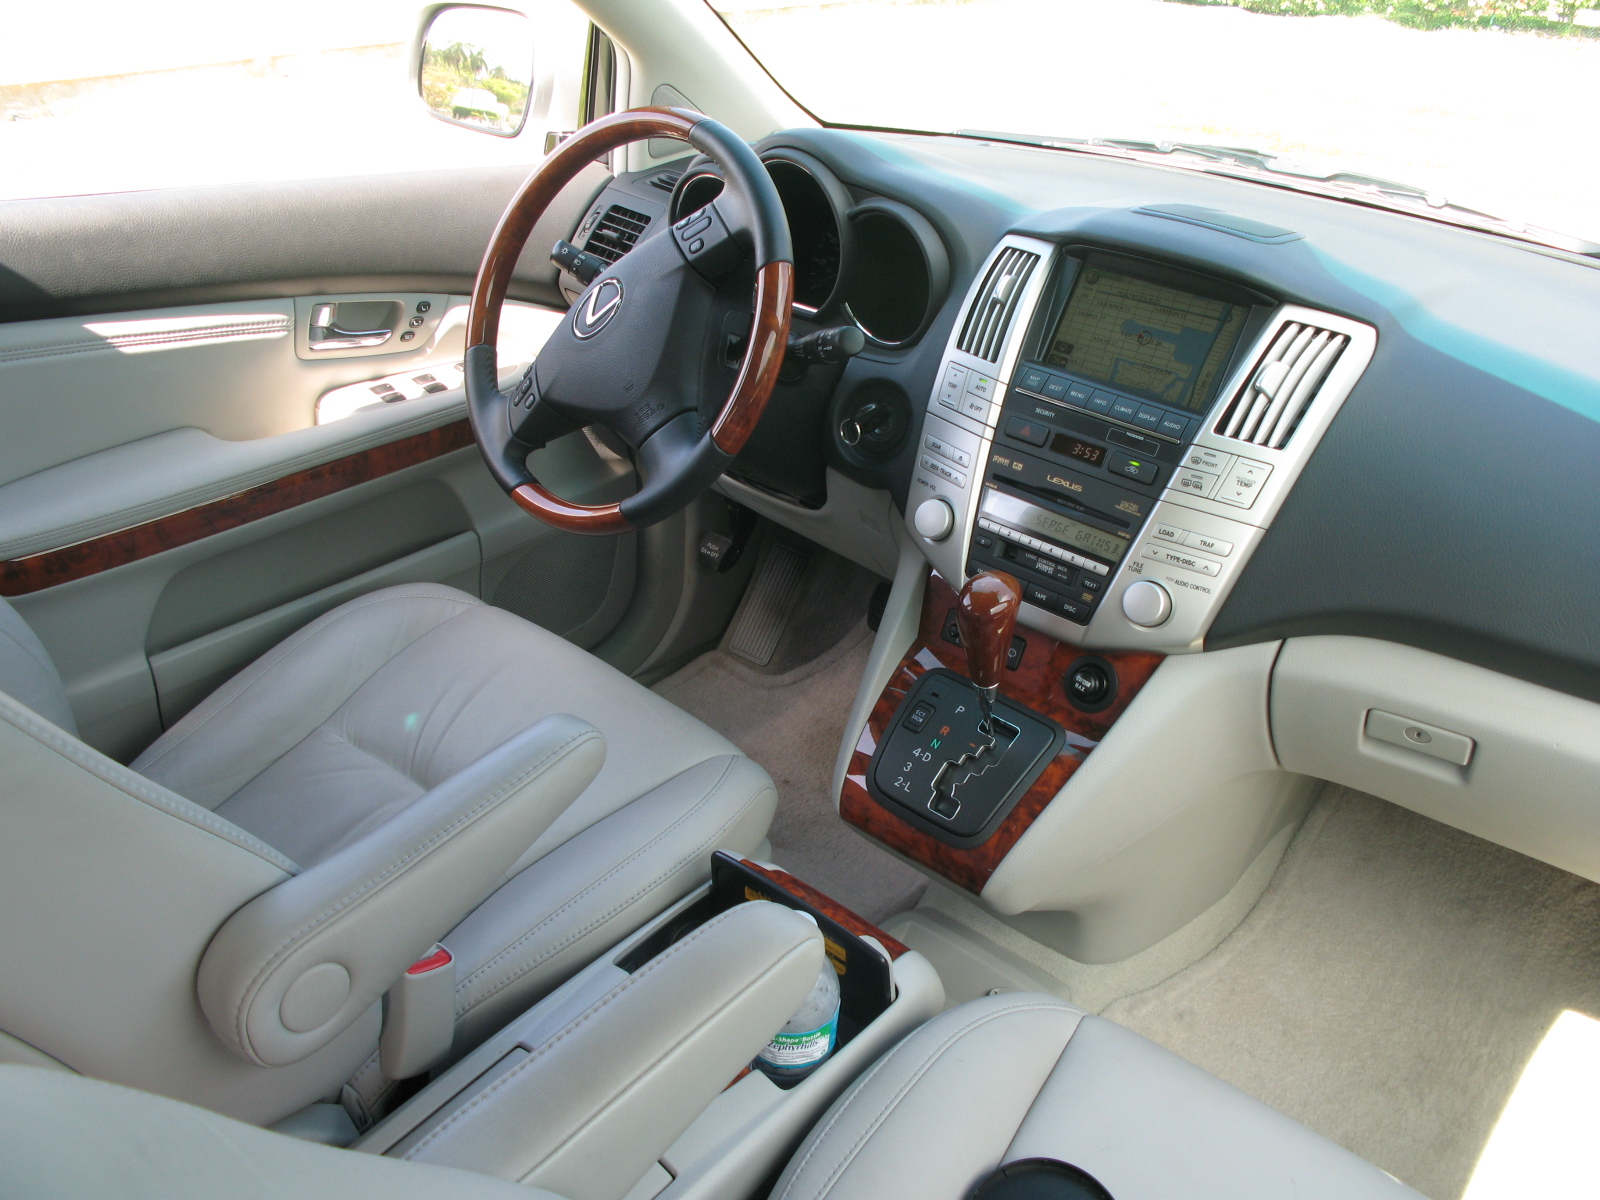 2008 Lexus RX350 Review | Top Speed